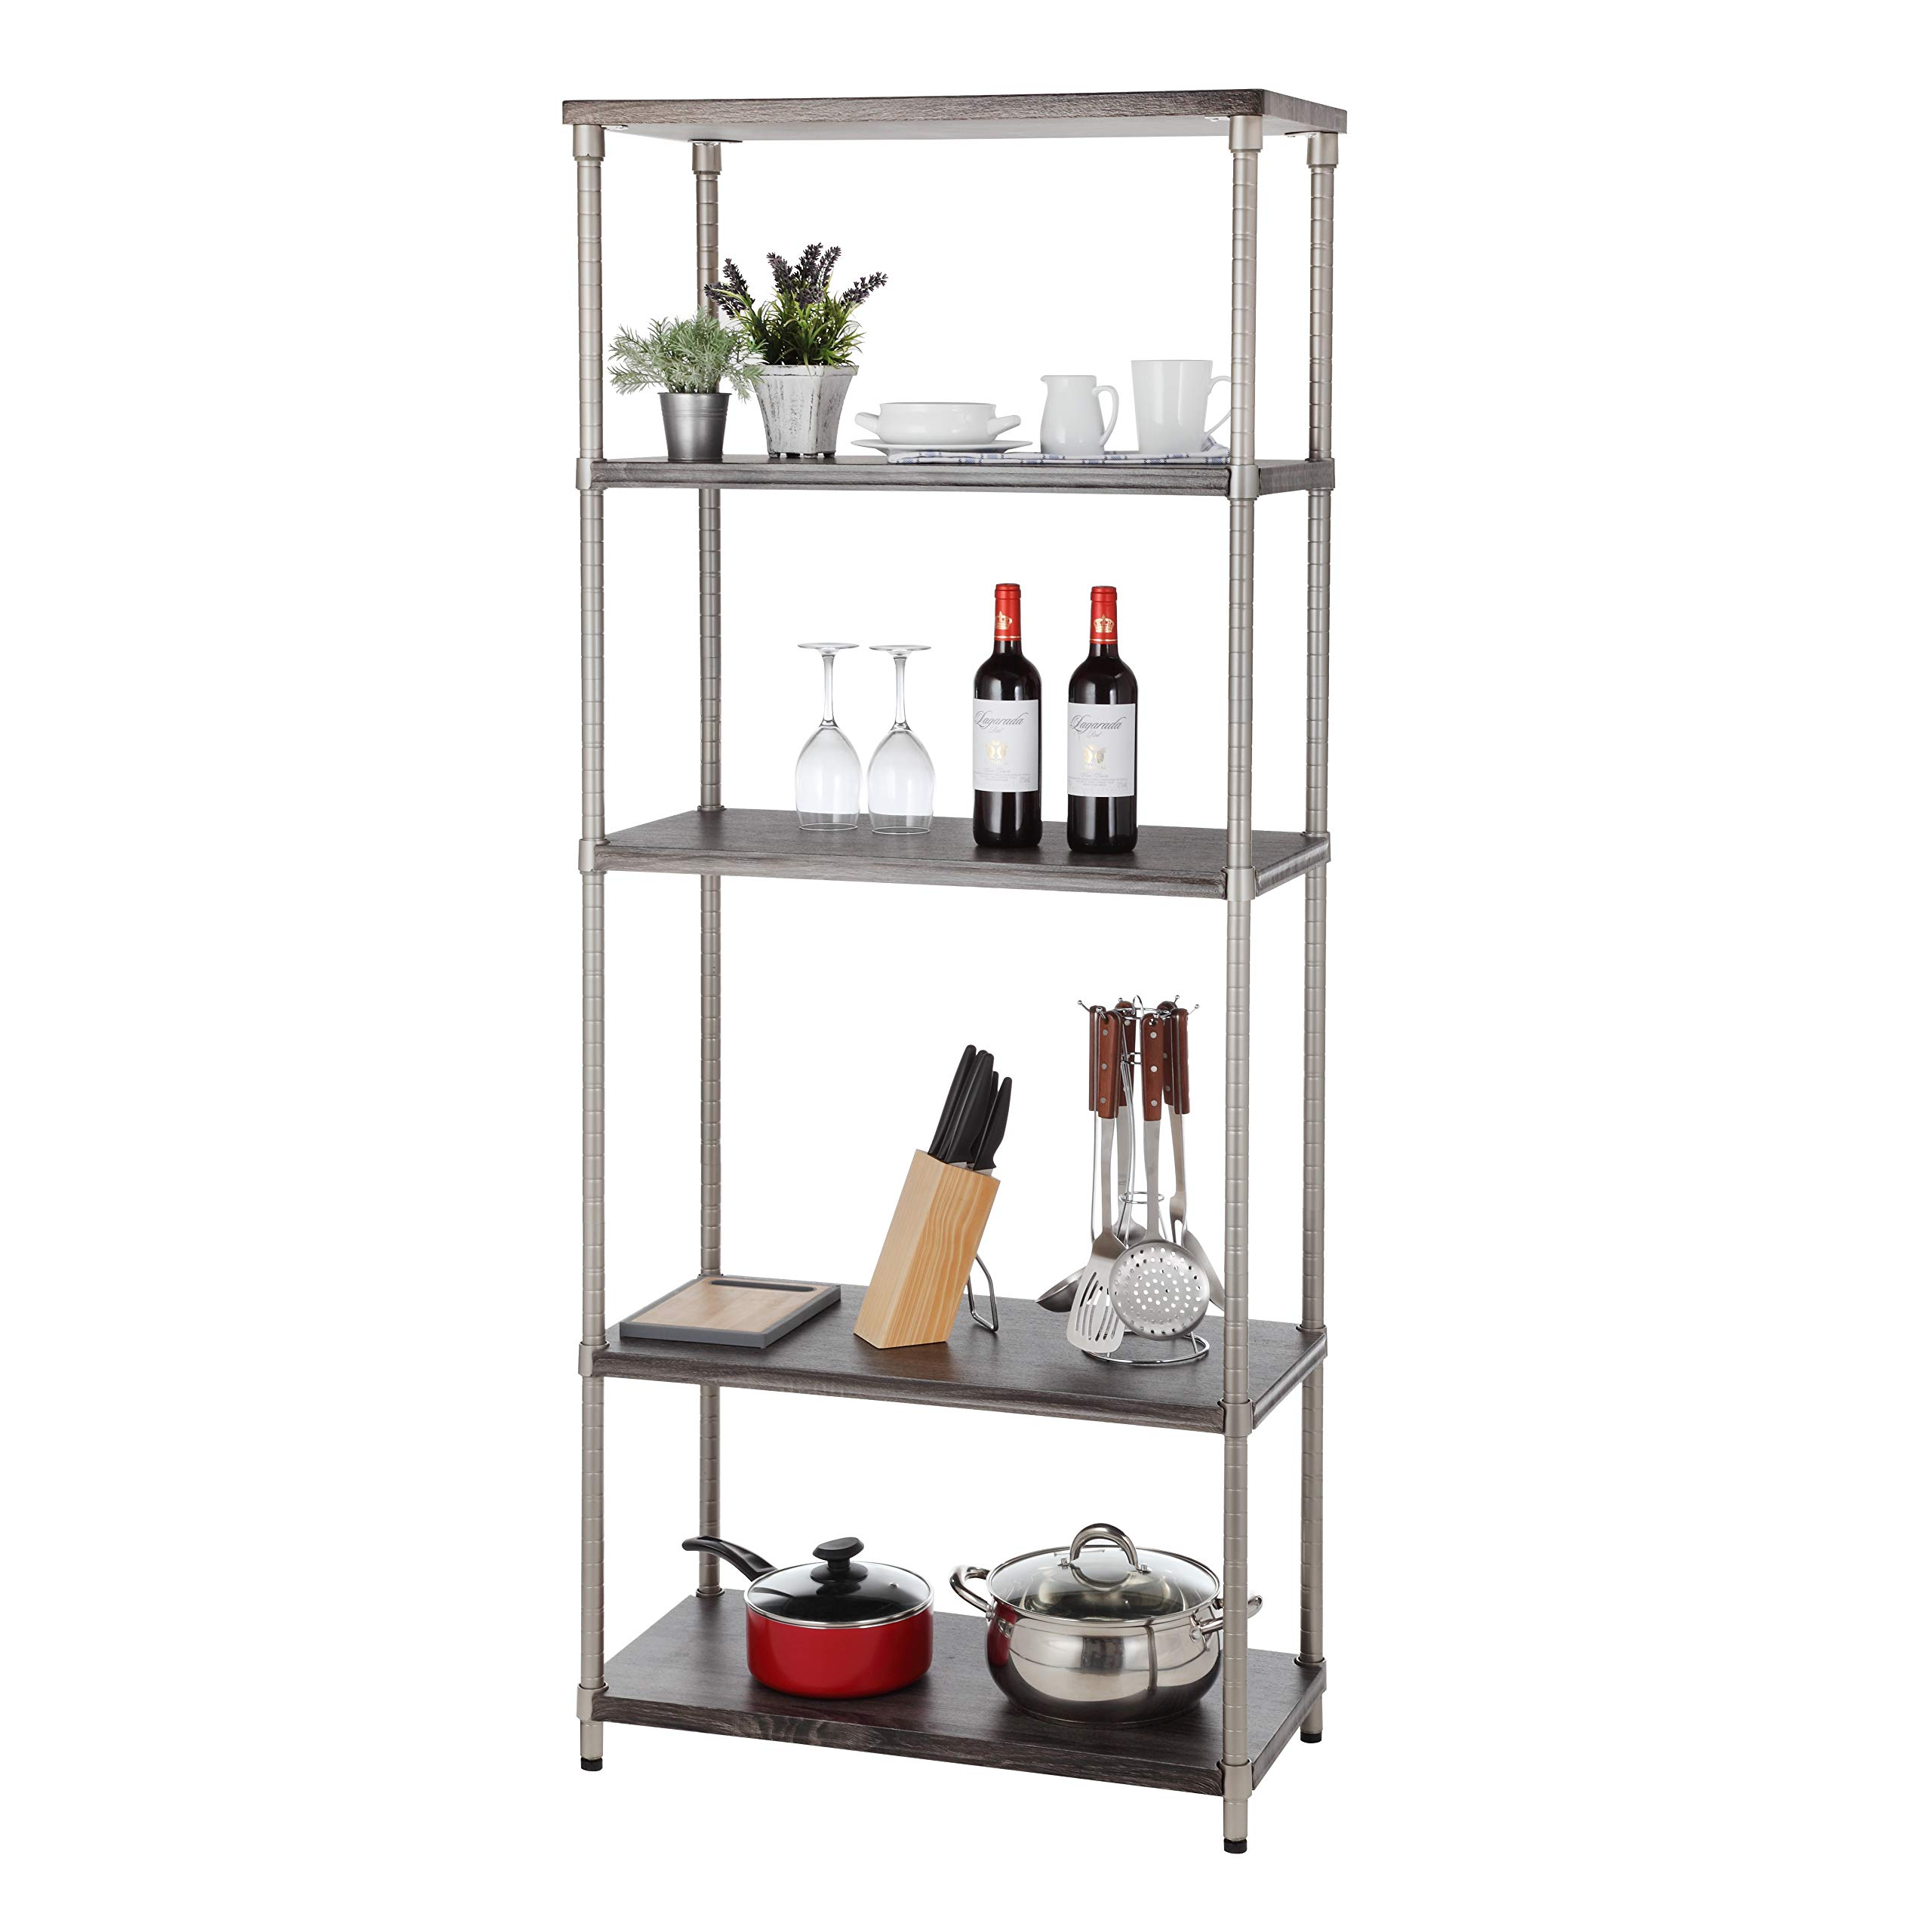 Home Zone Bookcase Storage Rack with 5-Tier Wide Shelving Unit     Steel and Wood with Satin Nickel Finish,